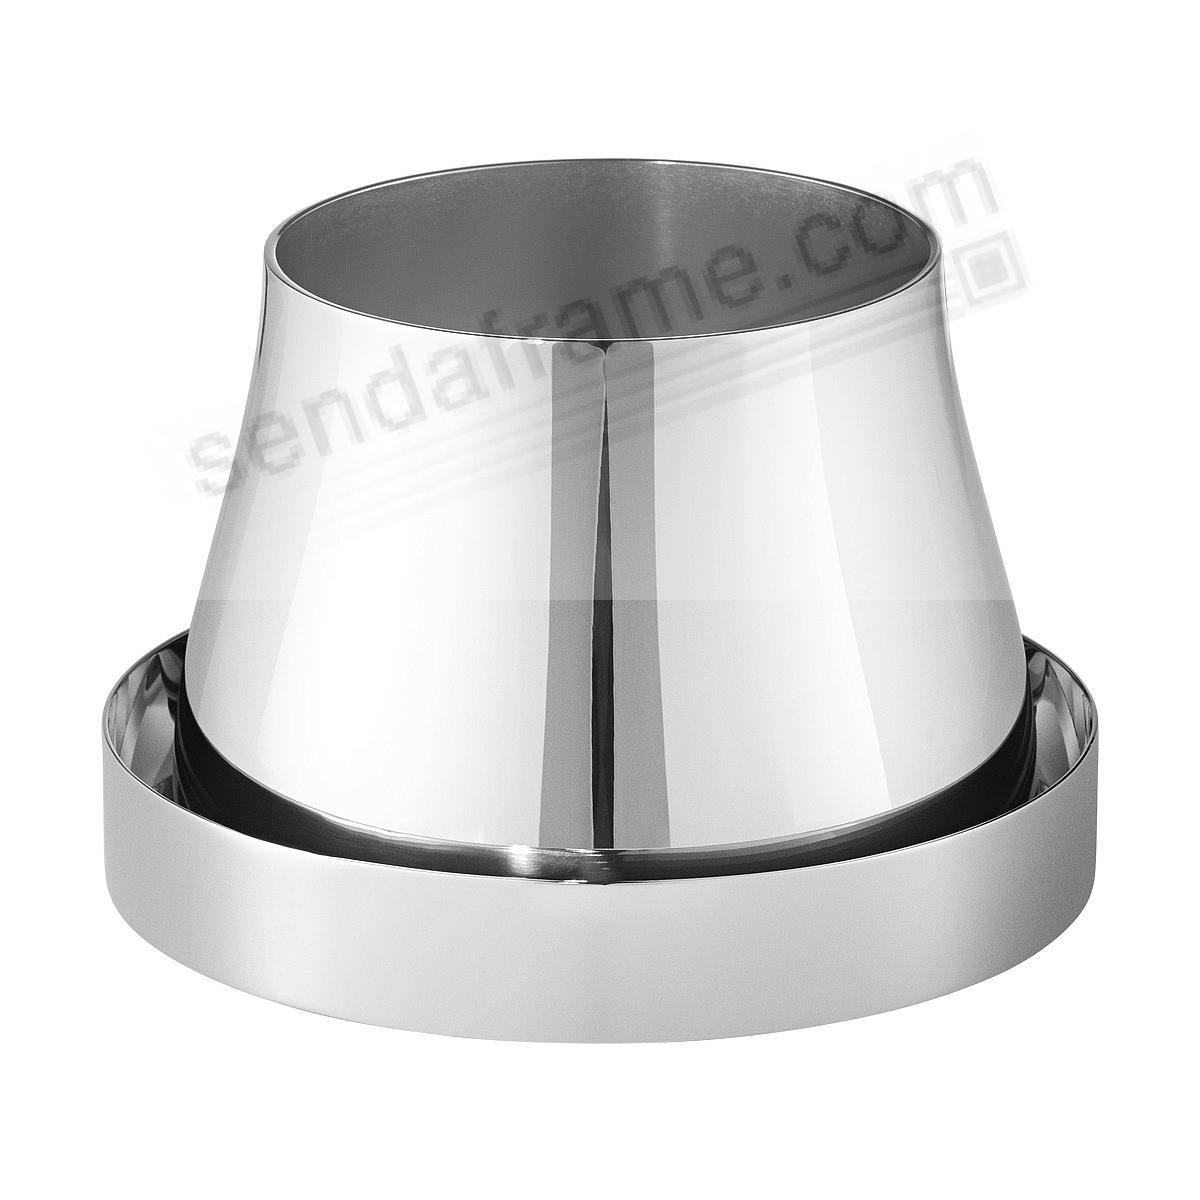 TERRA POT+SAUCER (small) Stainless Steel by Georg Jensen®